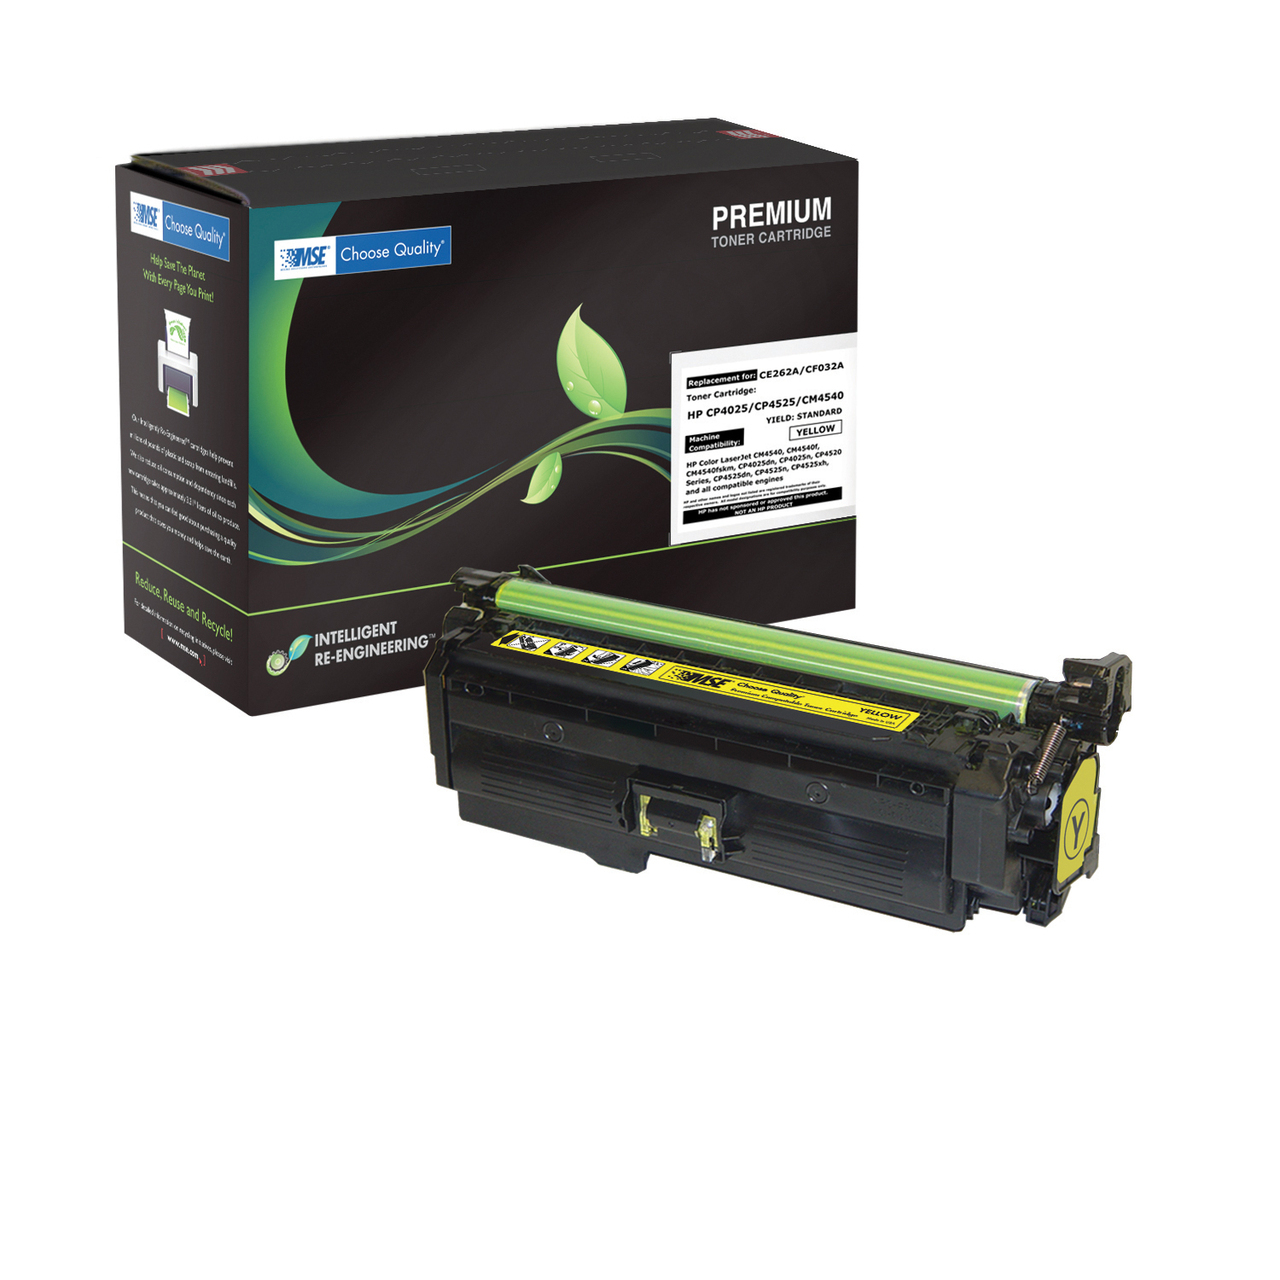 HP CE262A (648A) Yellow Laser Toner Cartridge - Yields 11,000 Pages